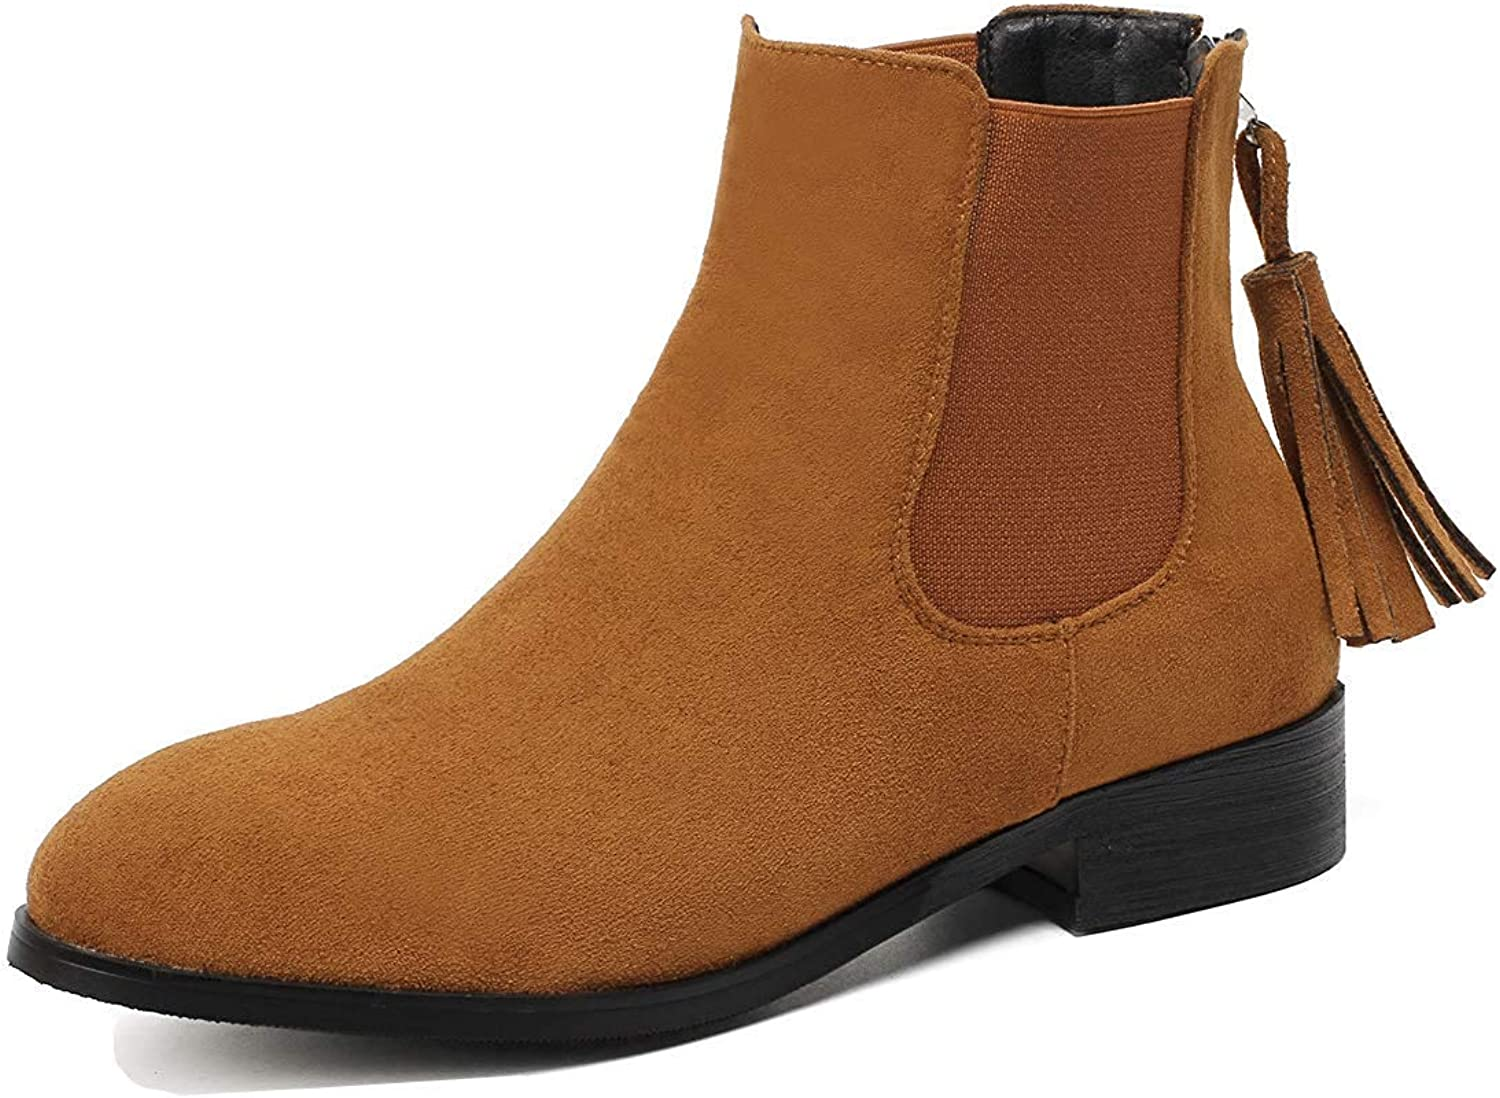 Women's Fringed Round Toe Short Chelsea Boots - Comfort Faux Suede Zip Up - Chunky Low Heel Ankle Booties